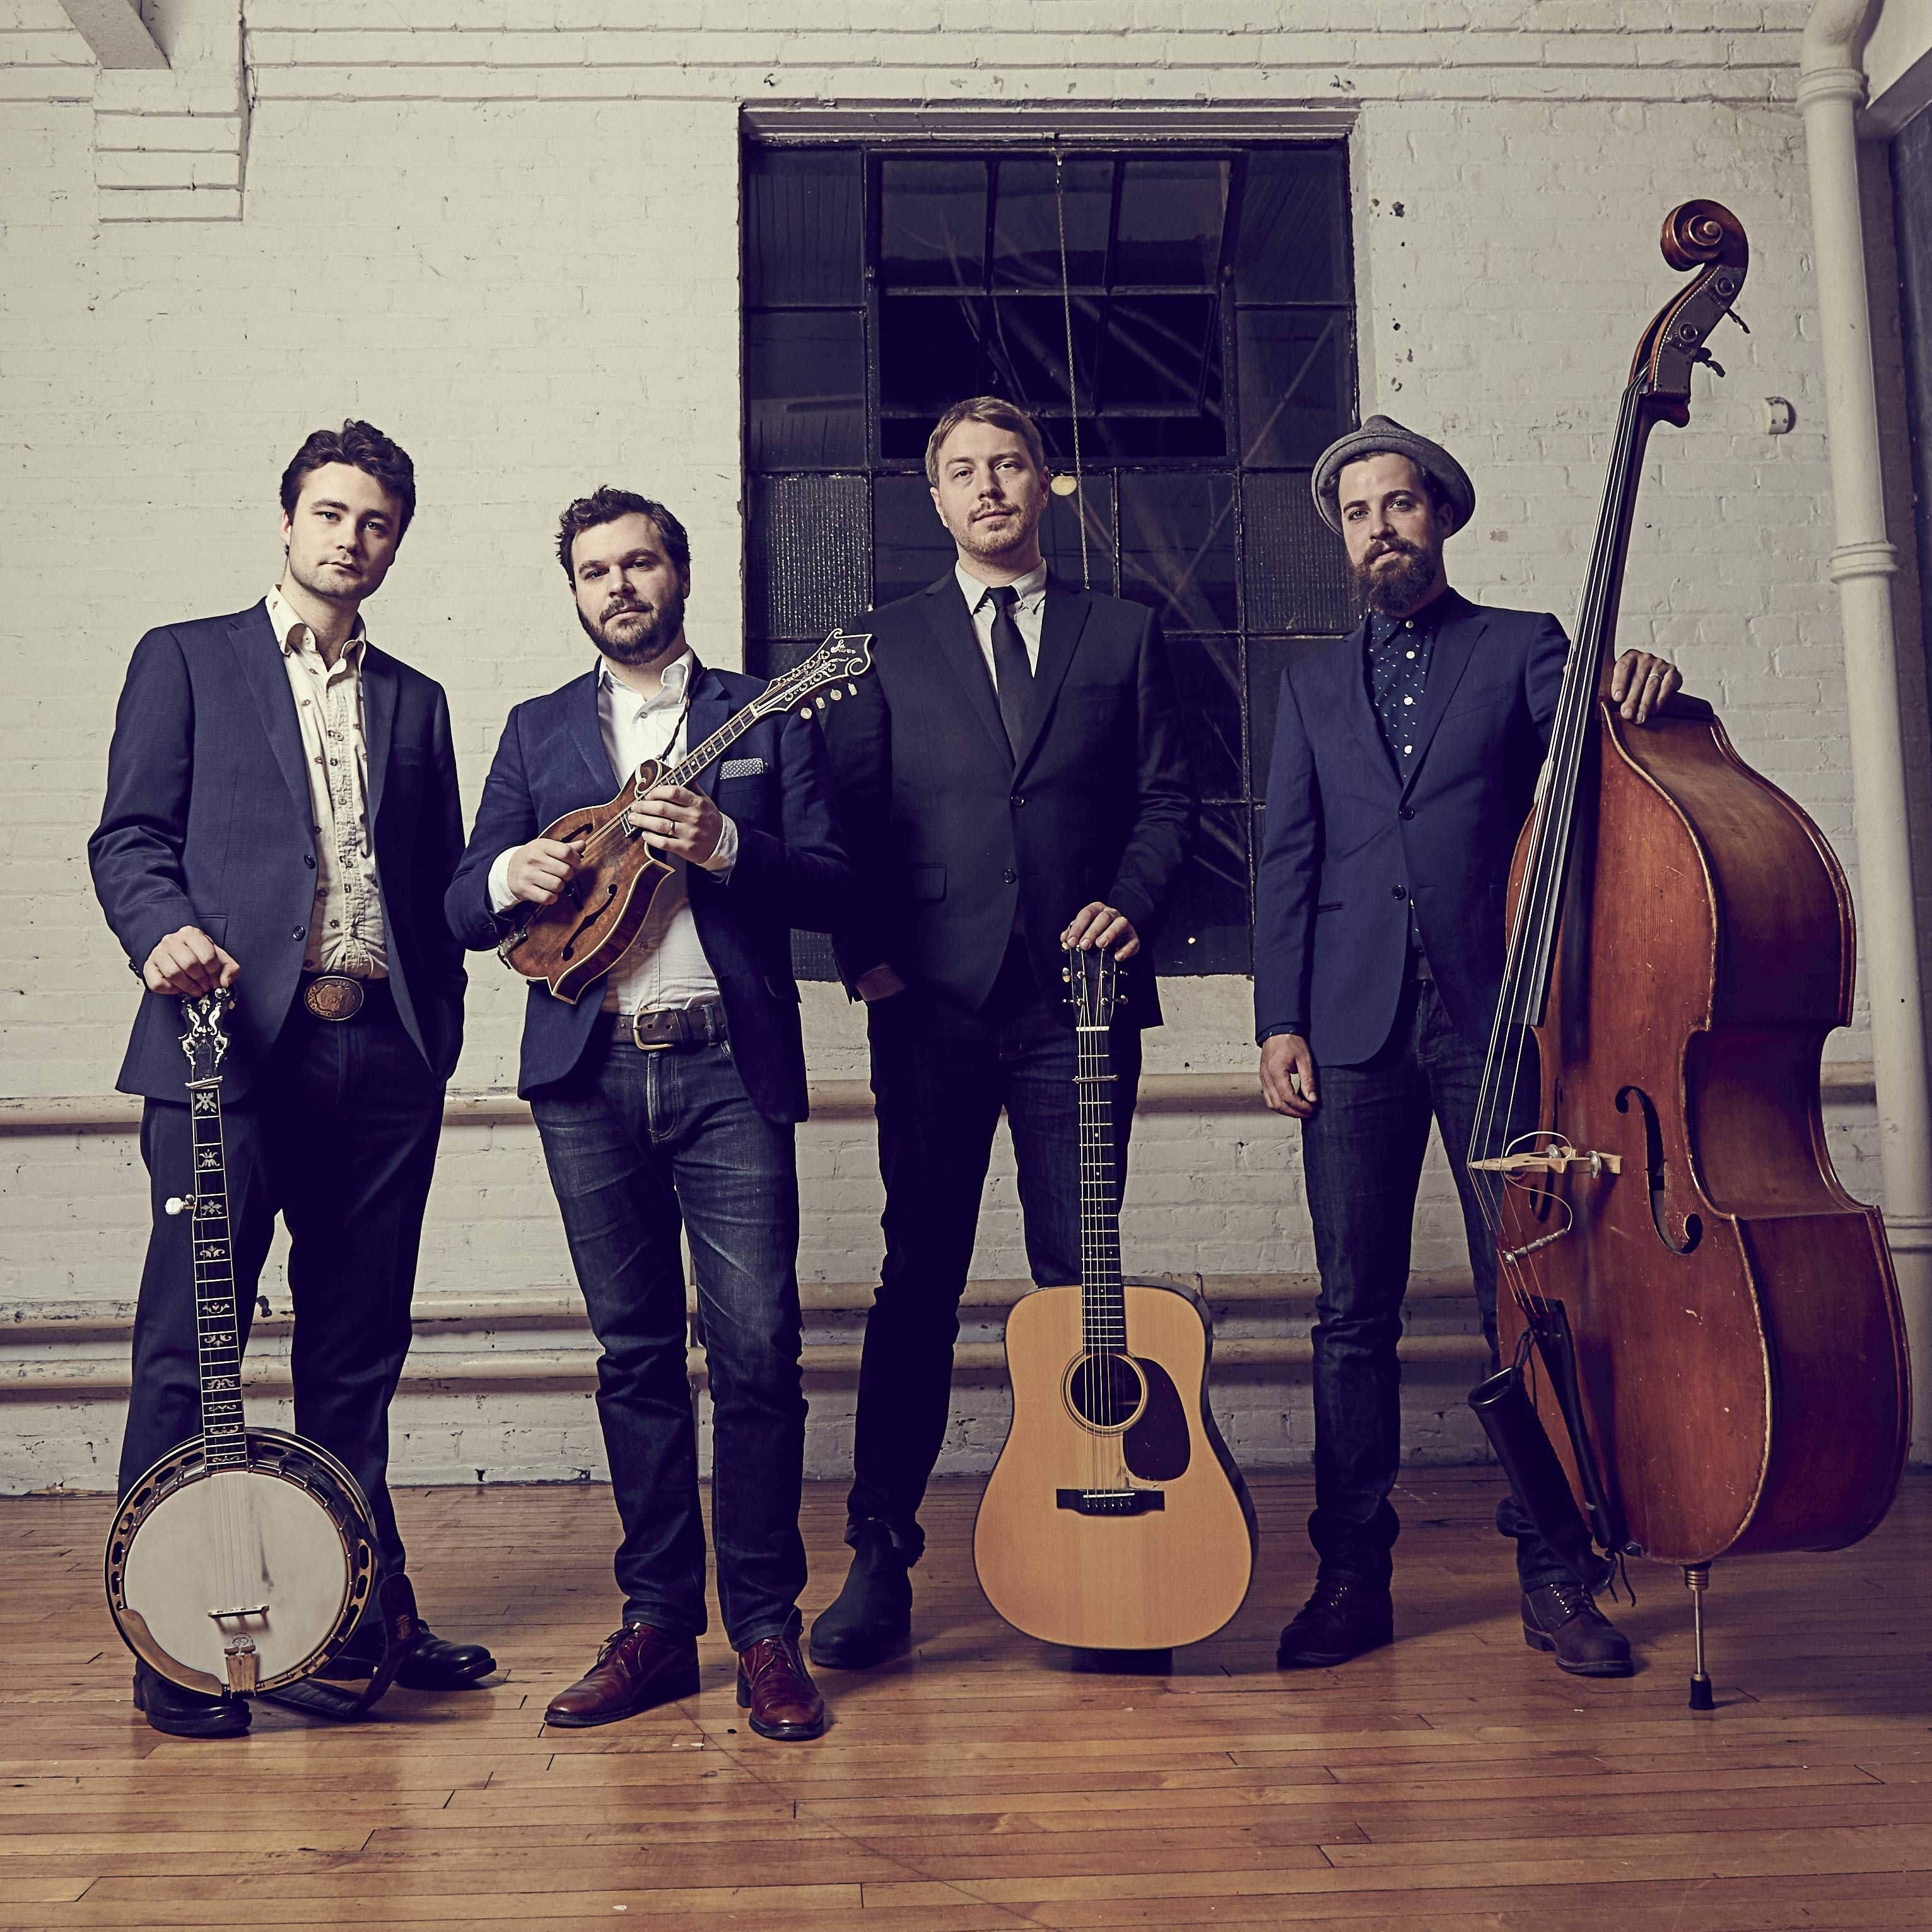 The Slocan Ramblers 3